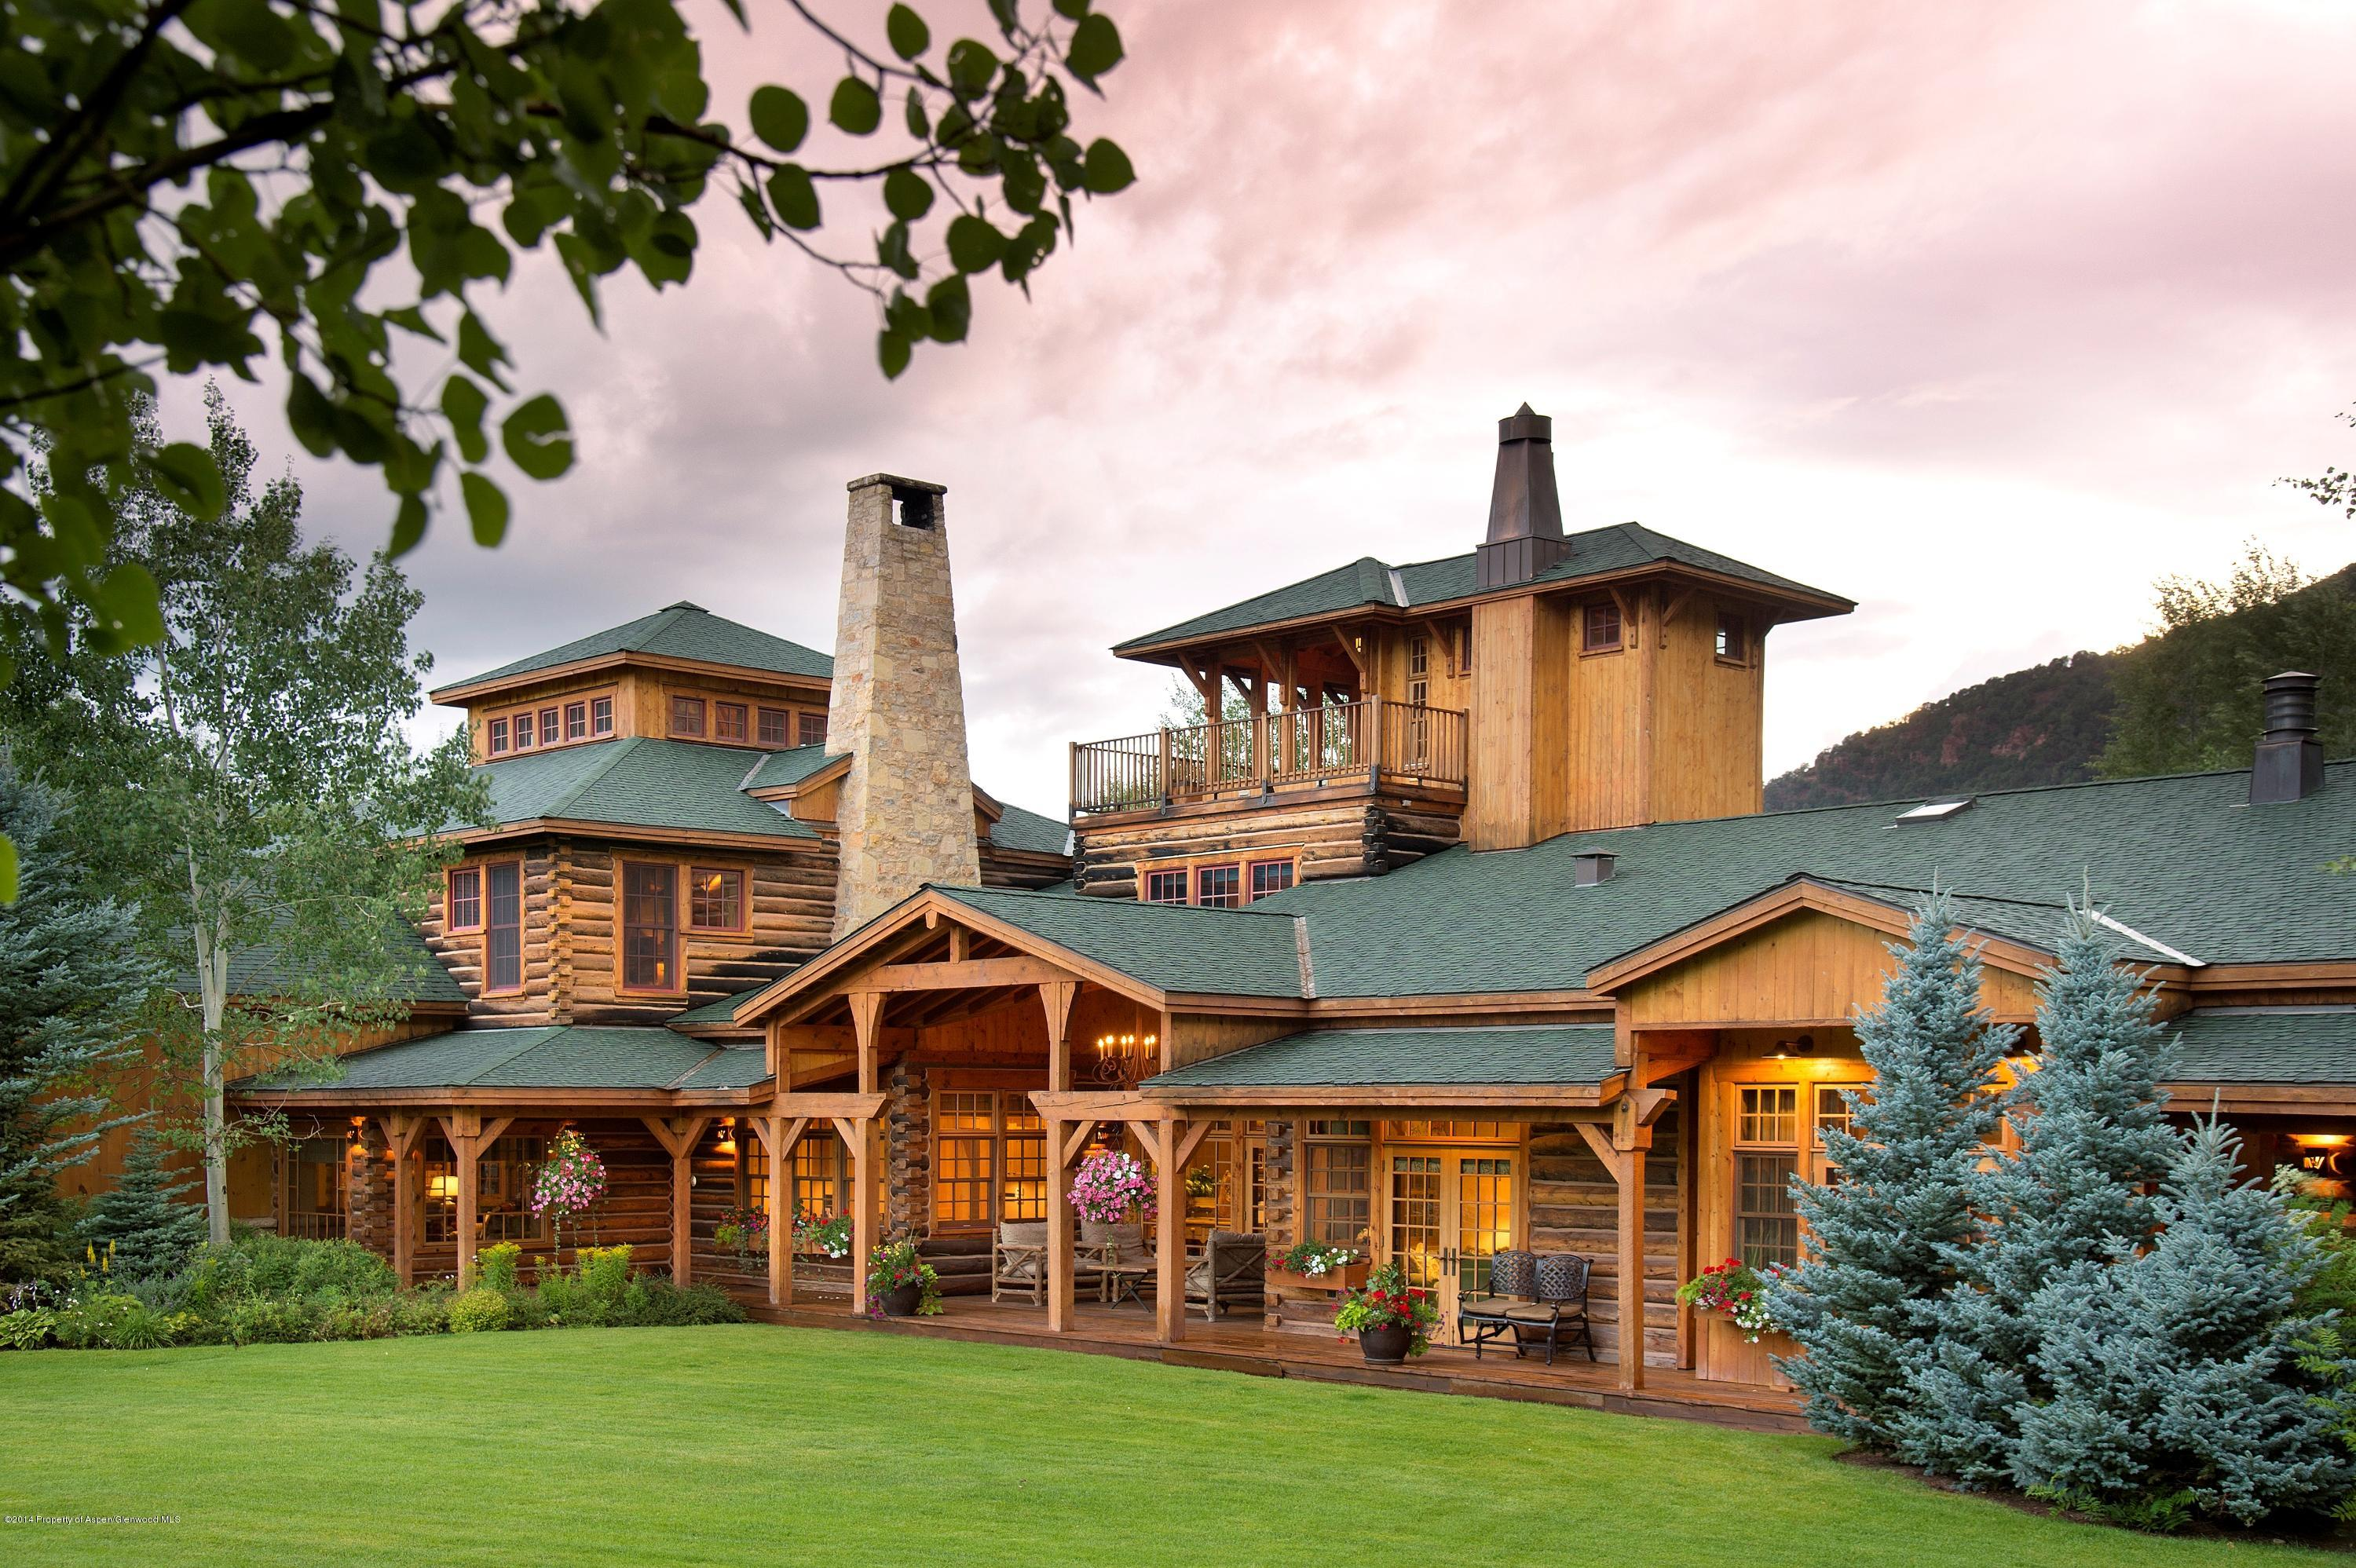 MLS# 135595 - 43 - 50 E River Ranch Road, Snowmass, CO 81654